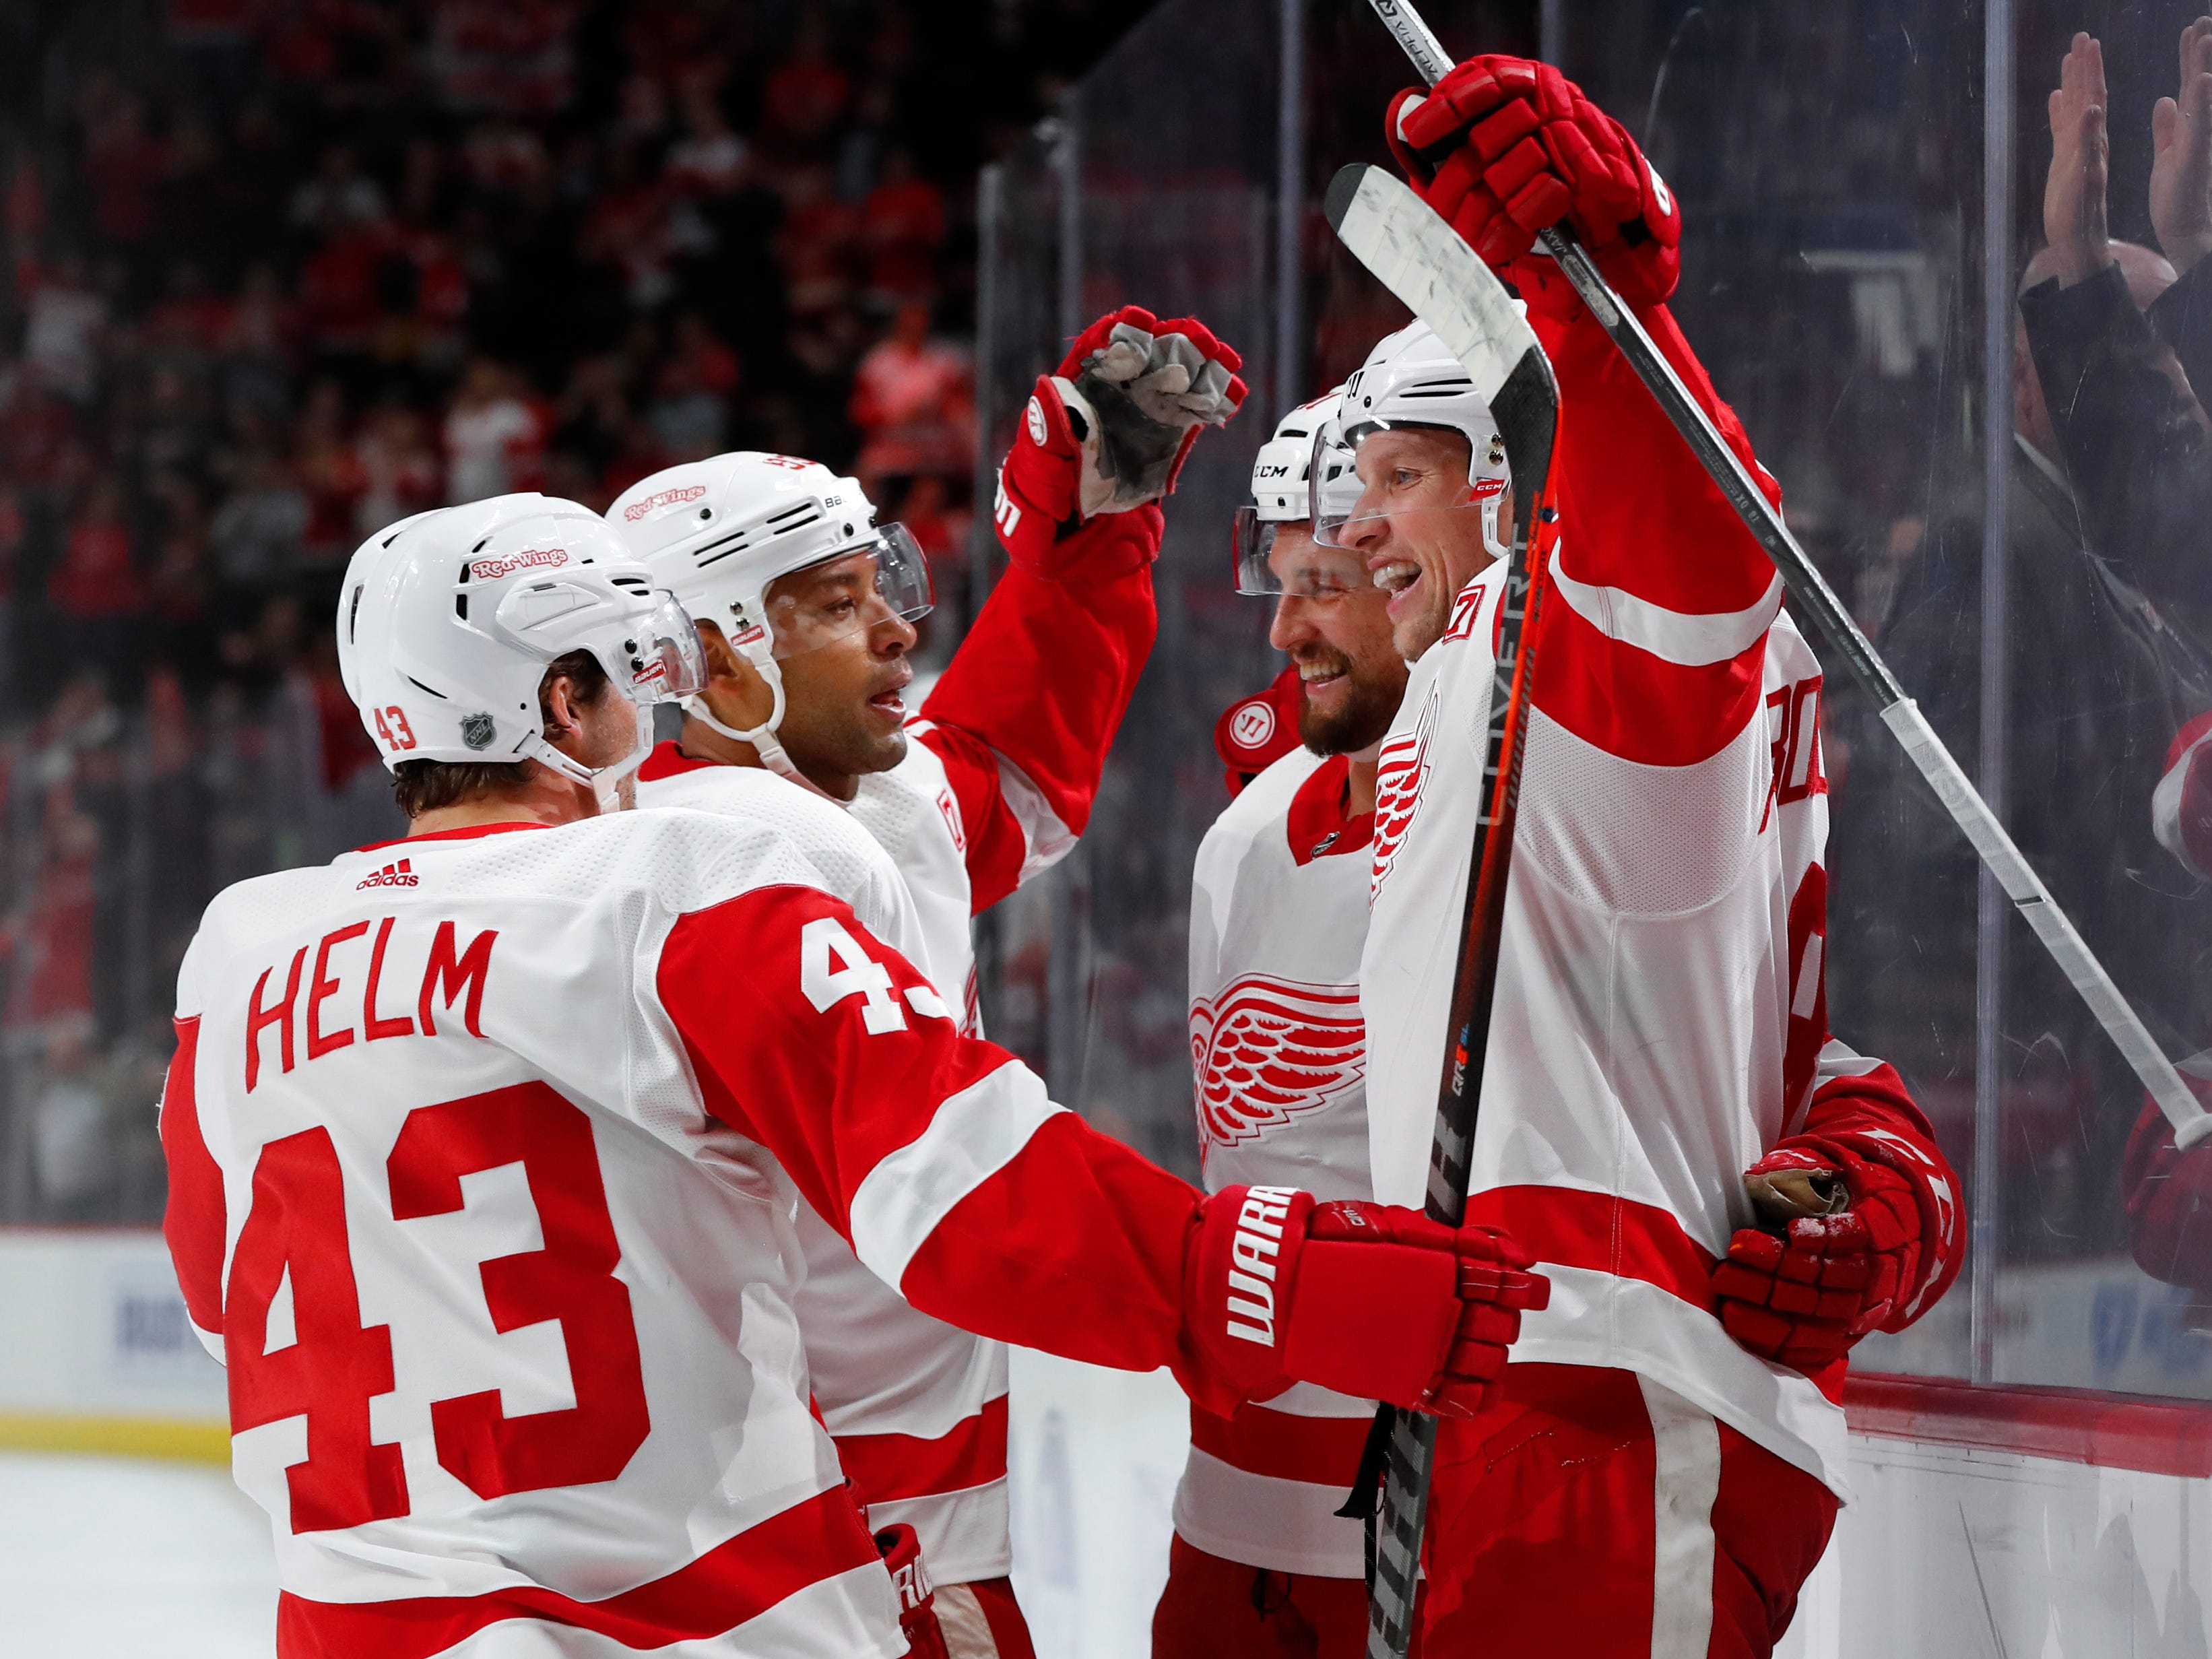 Detroit Red Wings left wing Justin Abdelkader, from right, celebrates his goal with Luke Glendening, Trevor Daley and Darren Helm (43) in the second period of an NHL hockey game against the Tampa Bay Lightning, Thursday, March 14, 2019, in Detroit.